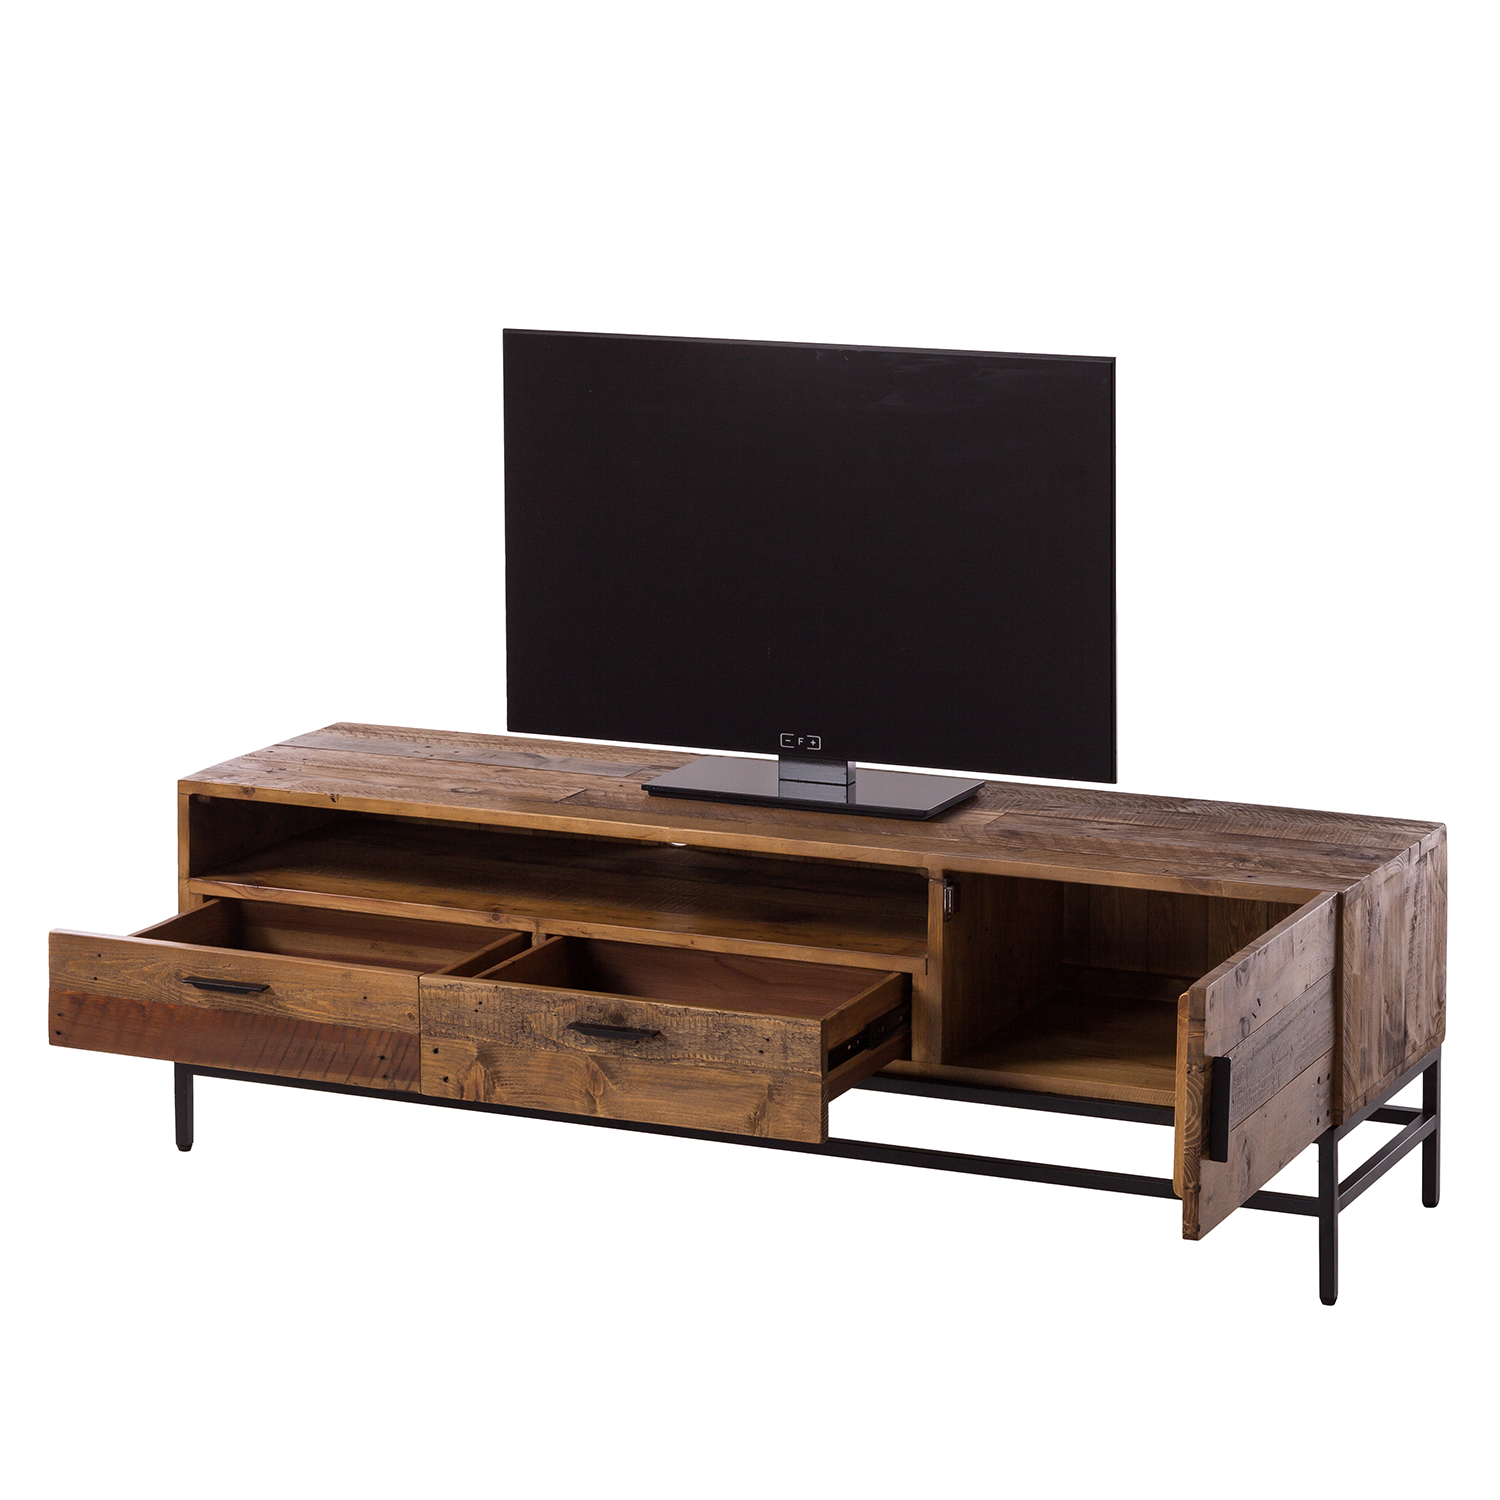 tv lowboard grasby i altholz pinie metall dunkel schwarz tv board schrank ebay. Black Bedroom Furniture Sets. Home Design Ideas